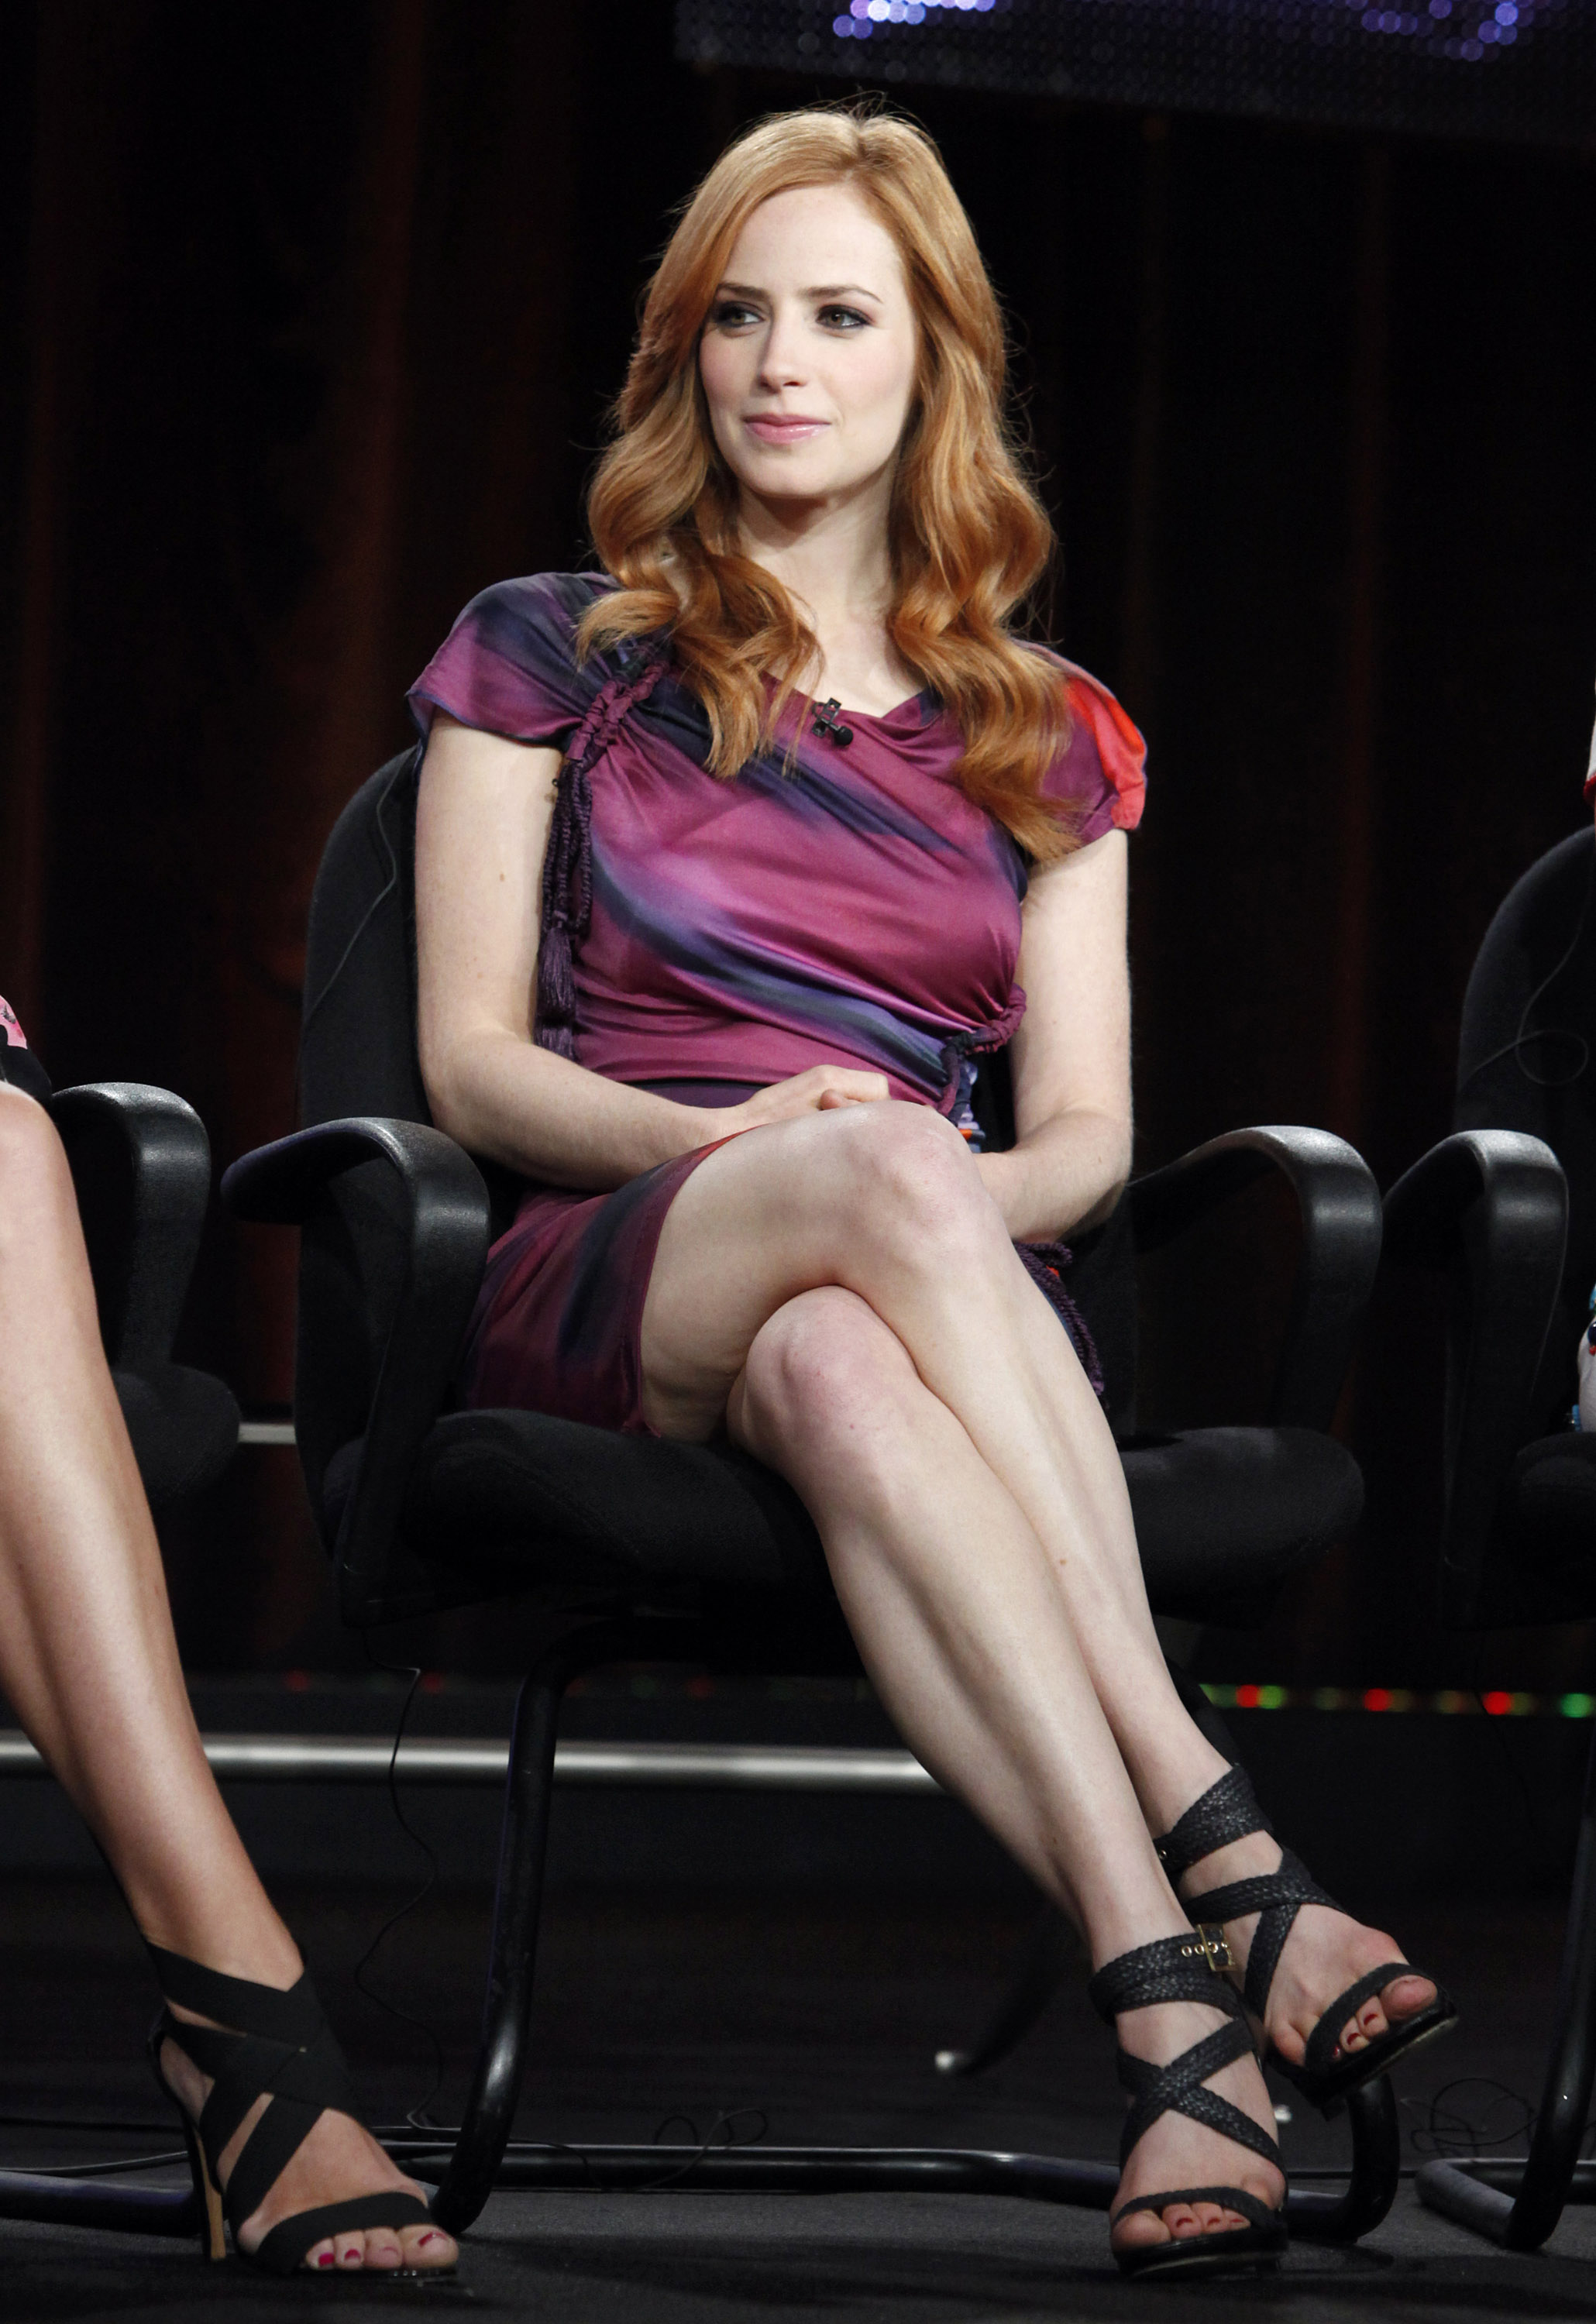 jaime ray newman married